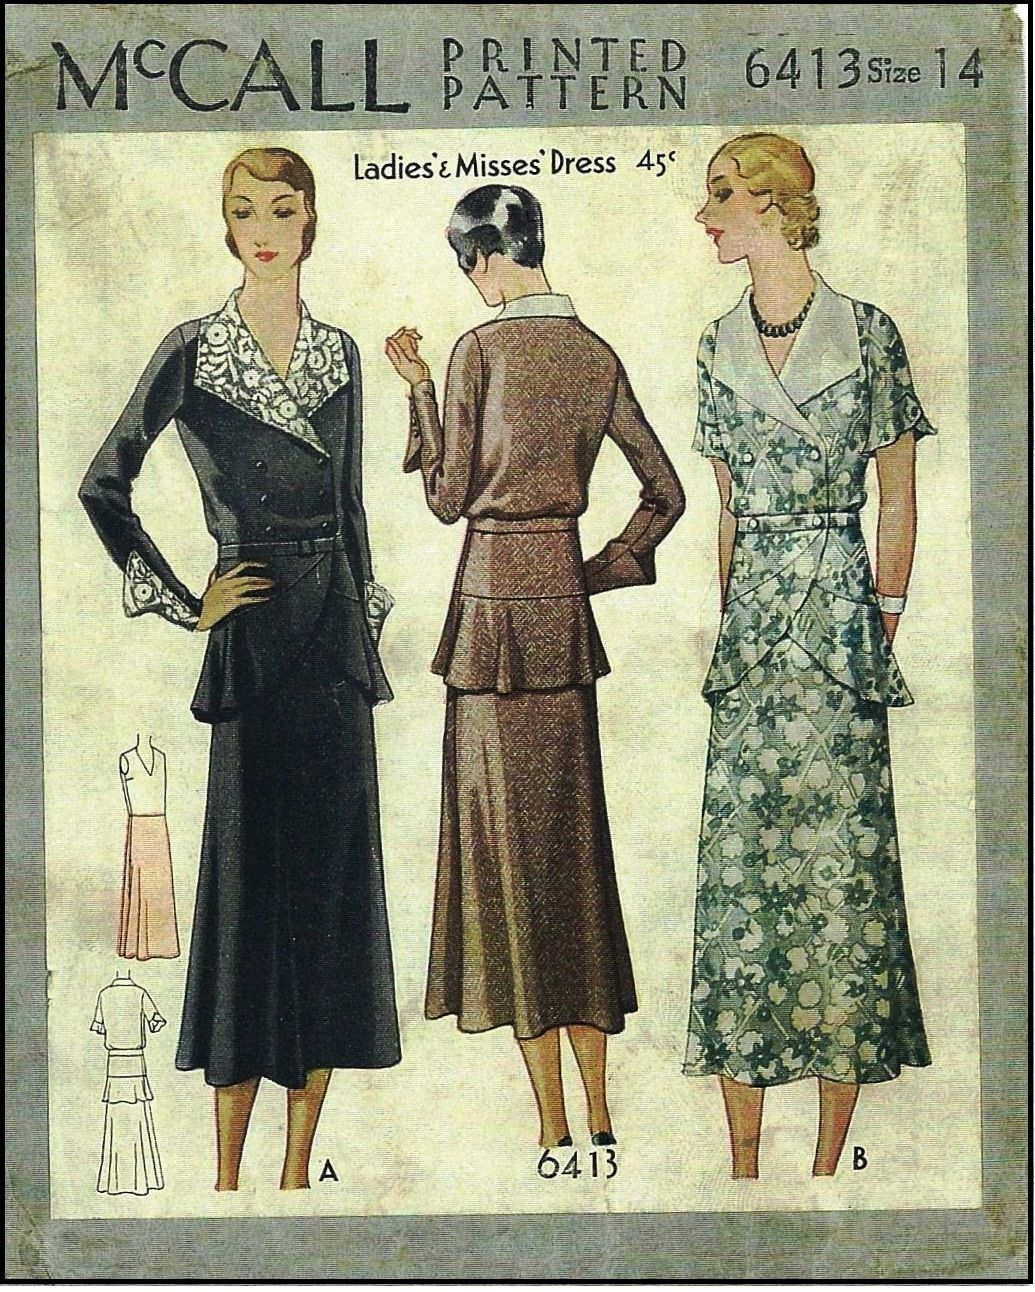 1930s Lades Dress Sewing Pattern - McCall #6413